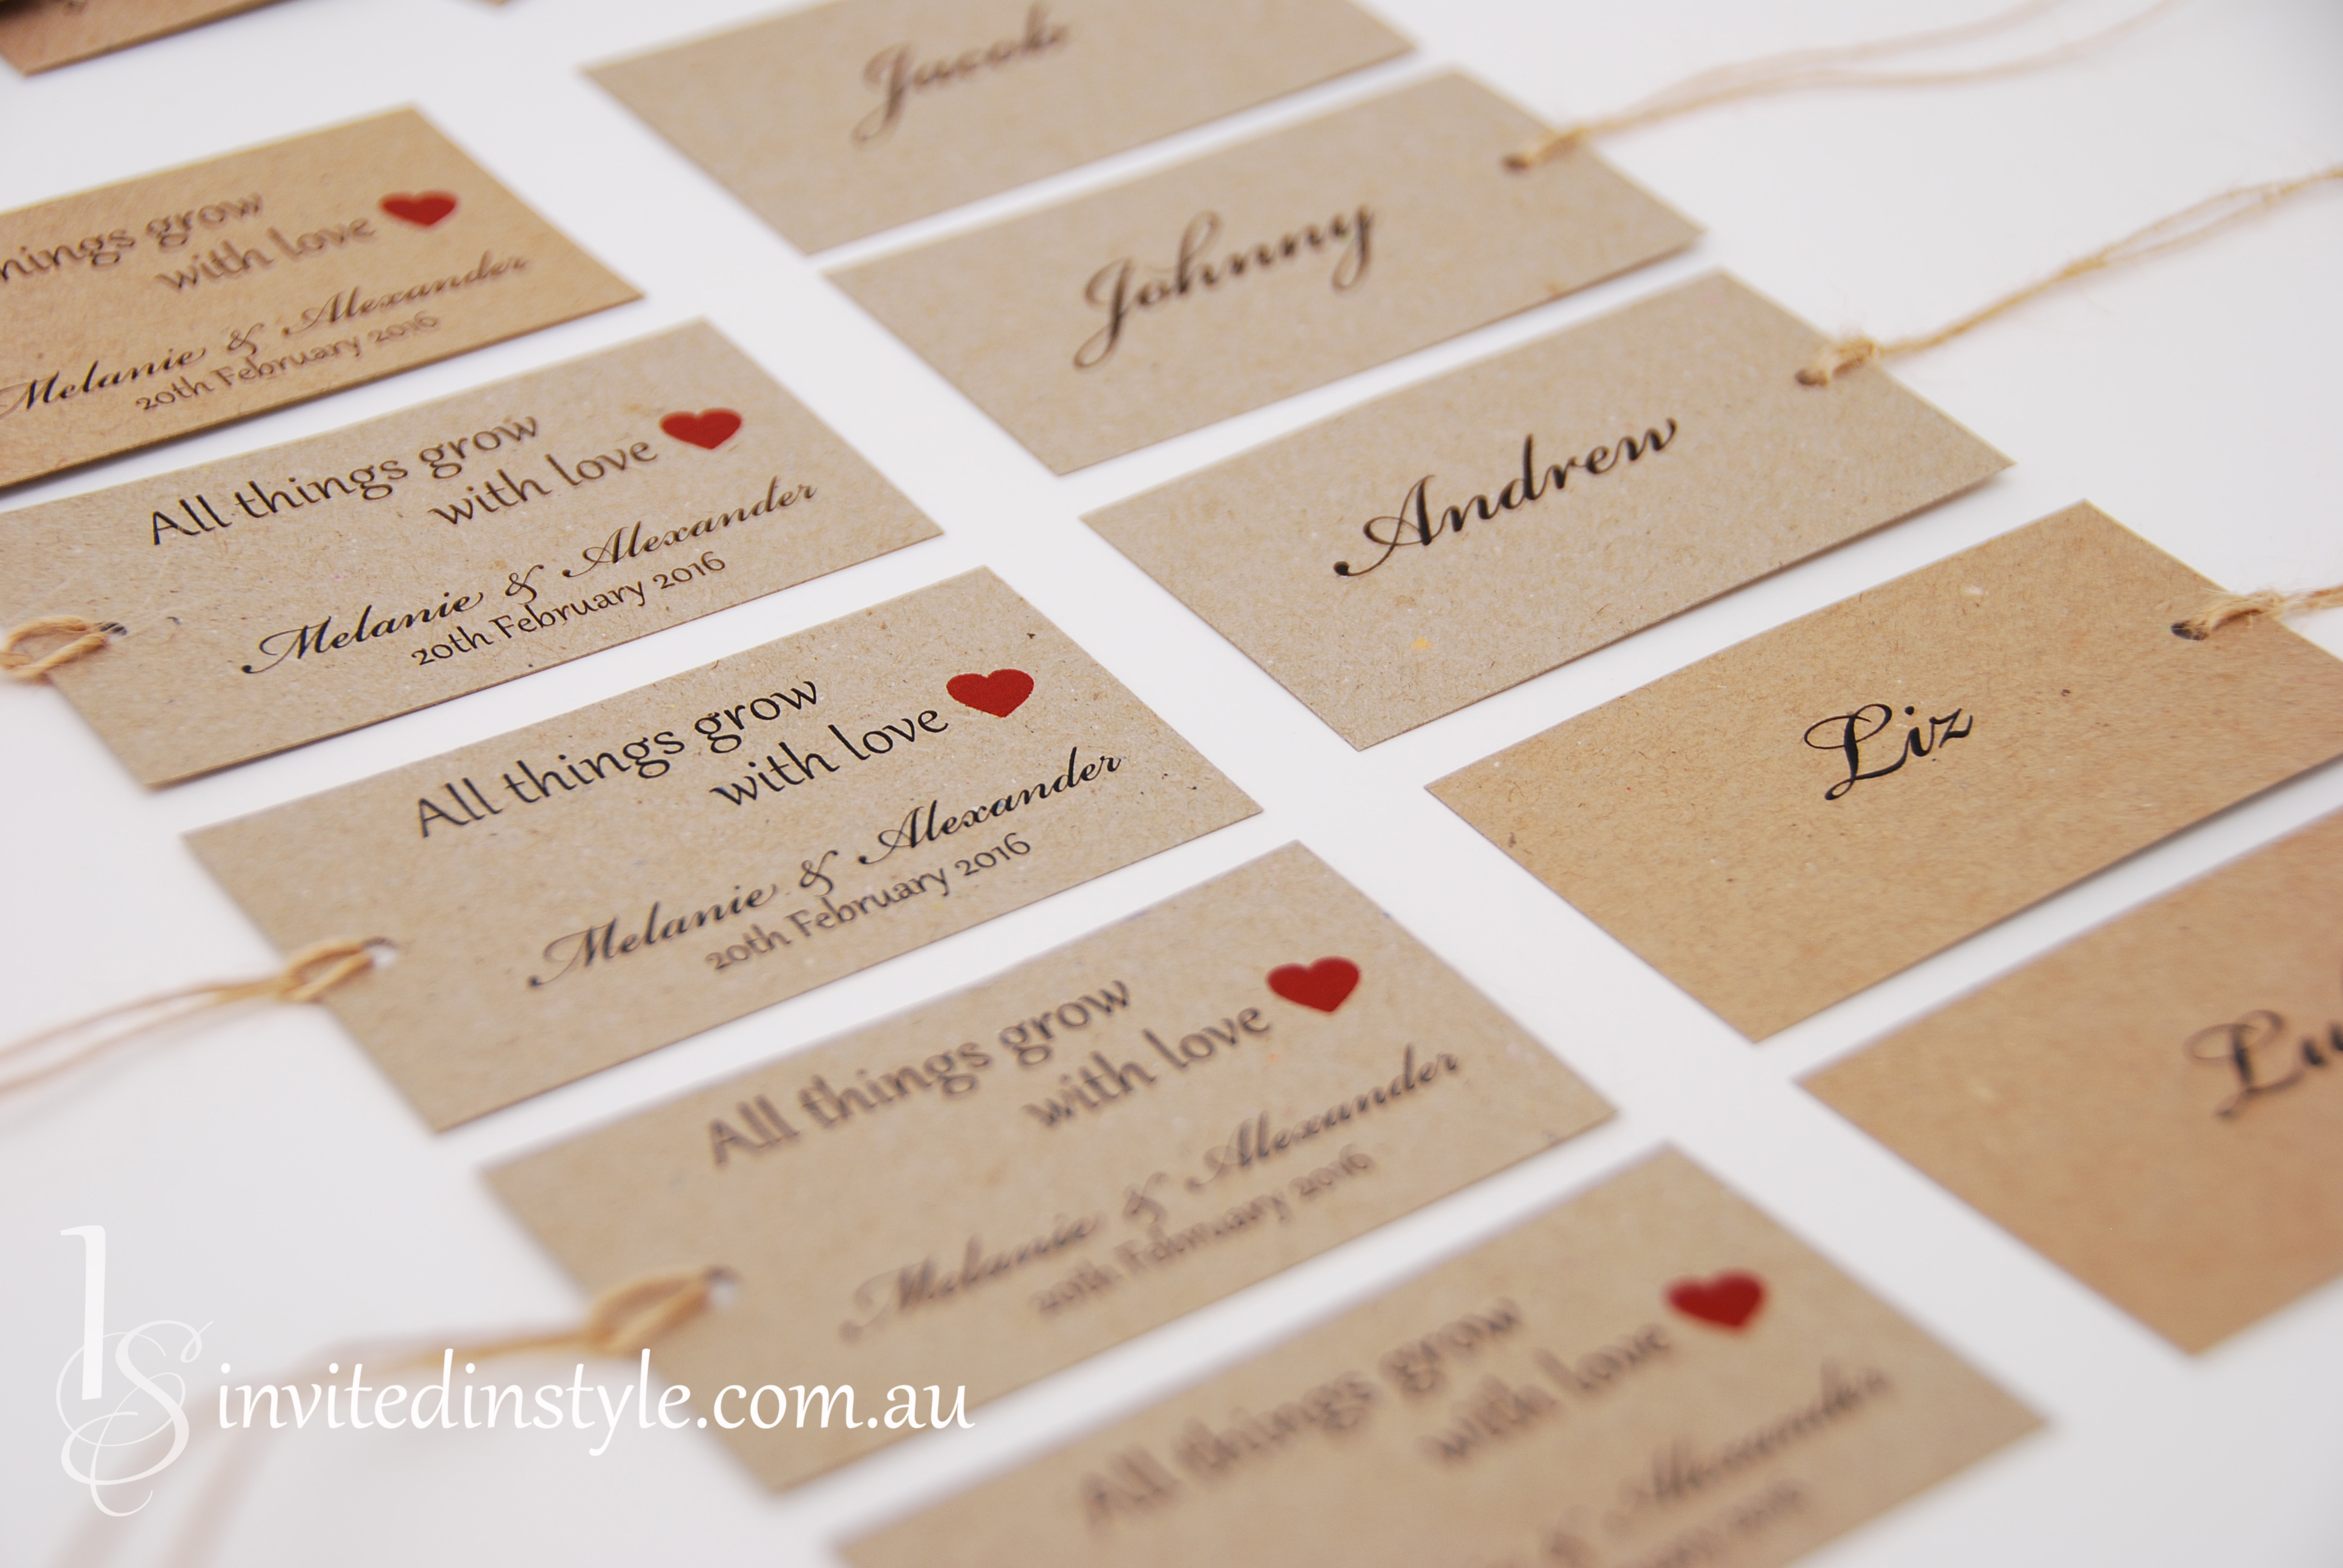 Bonbonniere Wedding Favours Amp Gift Tags Invited In Style